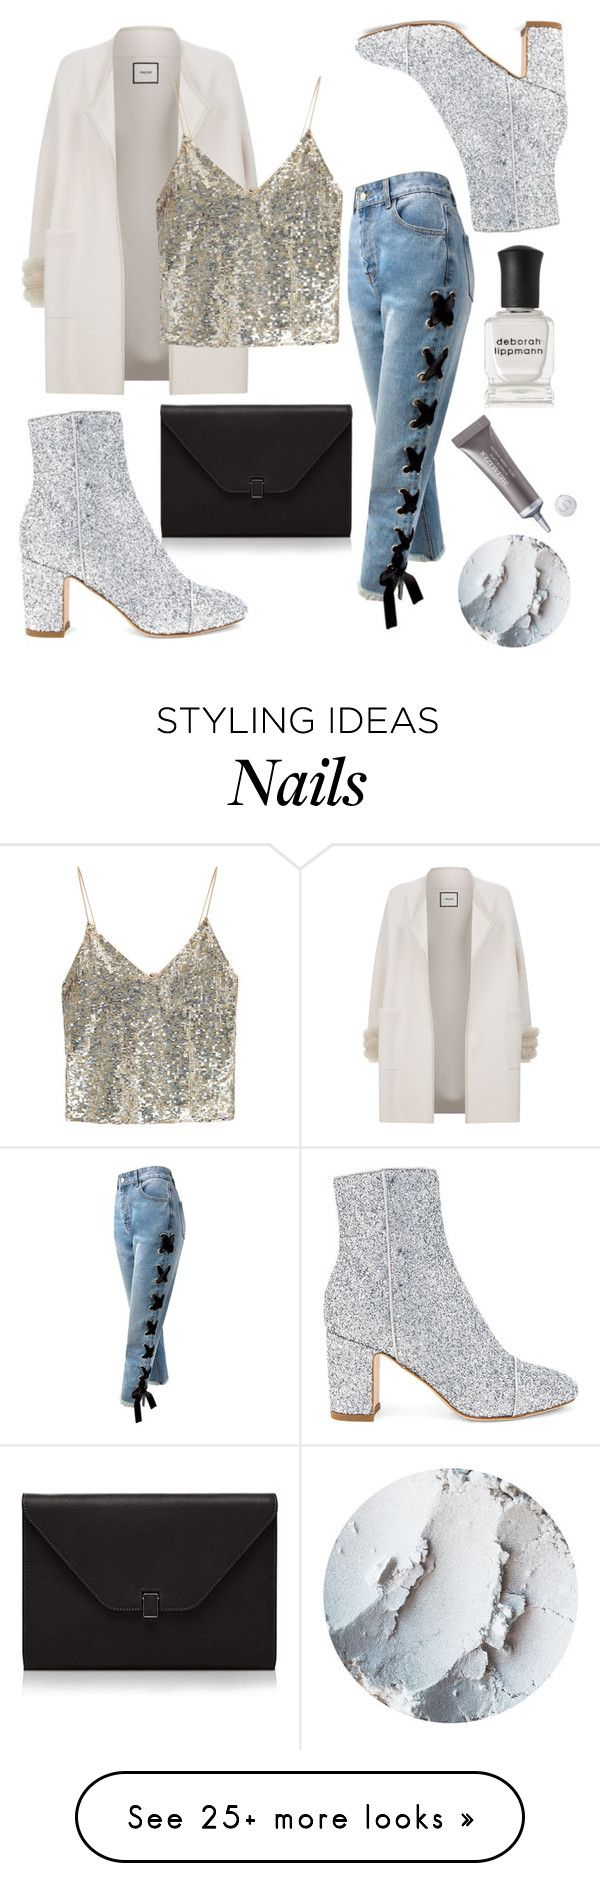 """""""Just enough"""" by hejamieson on Polyvore featuring Sans Souci, Valextra, Polly Plume, Max & Moi, Alice + Olivia, Deborah Lippmann and Christian Dior"""